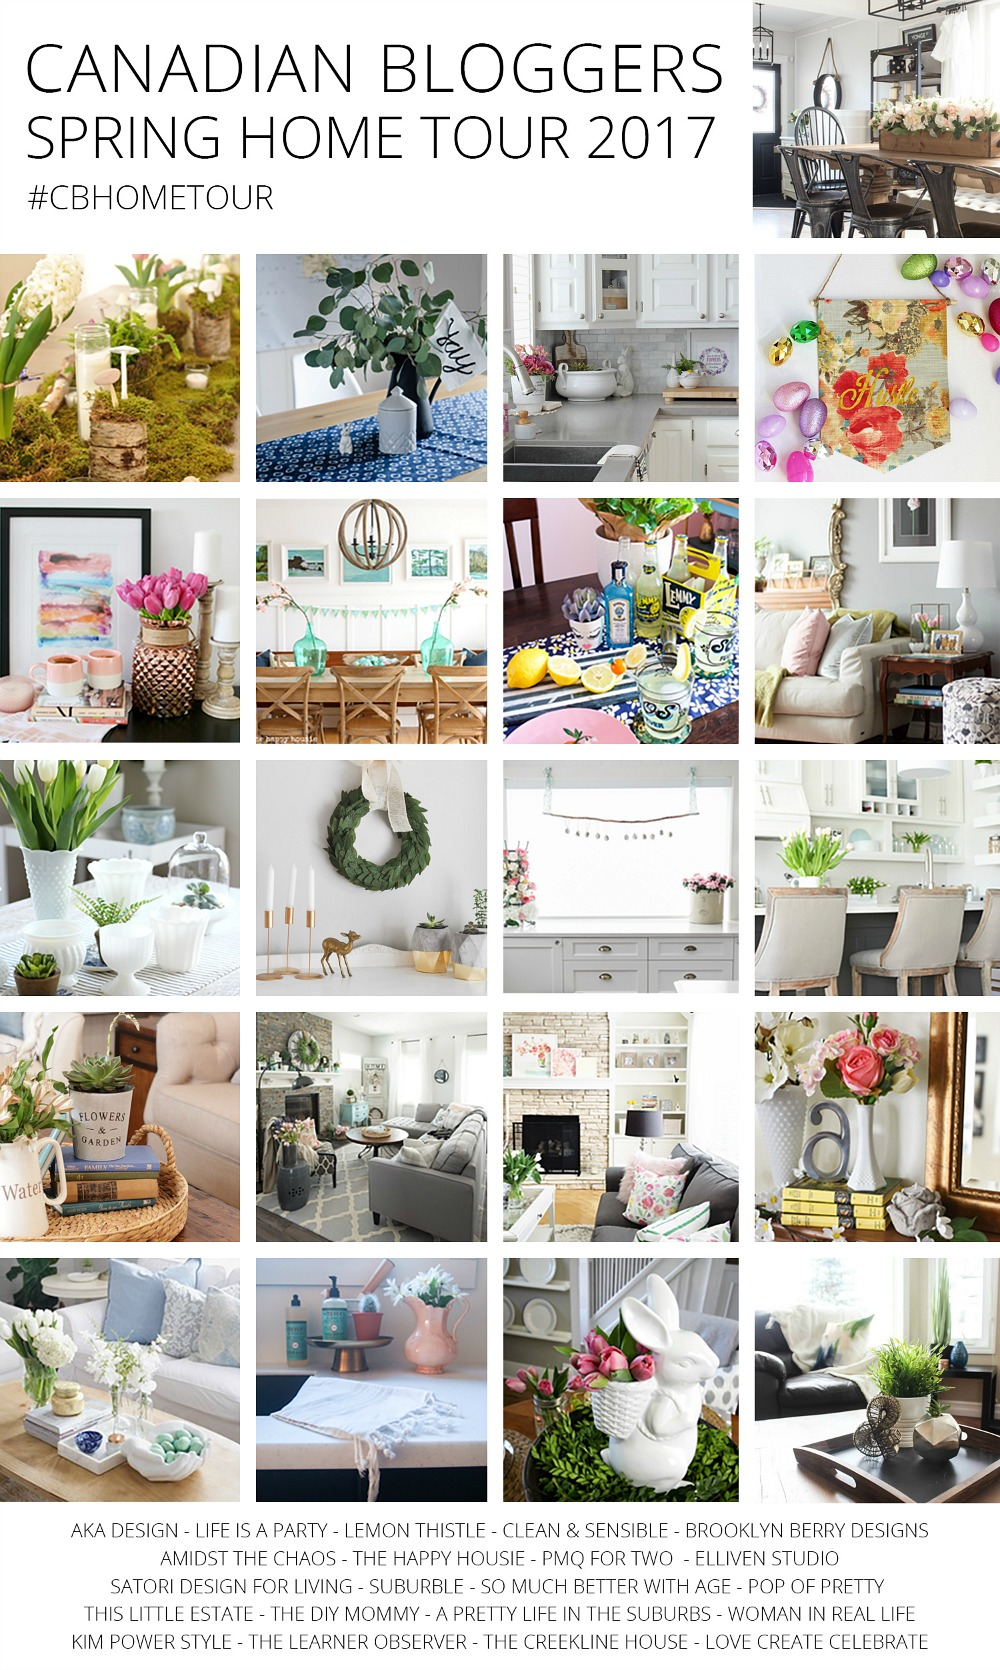 Canadian Bloggers Spring Home Tour 2017